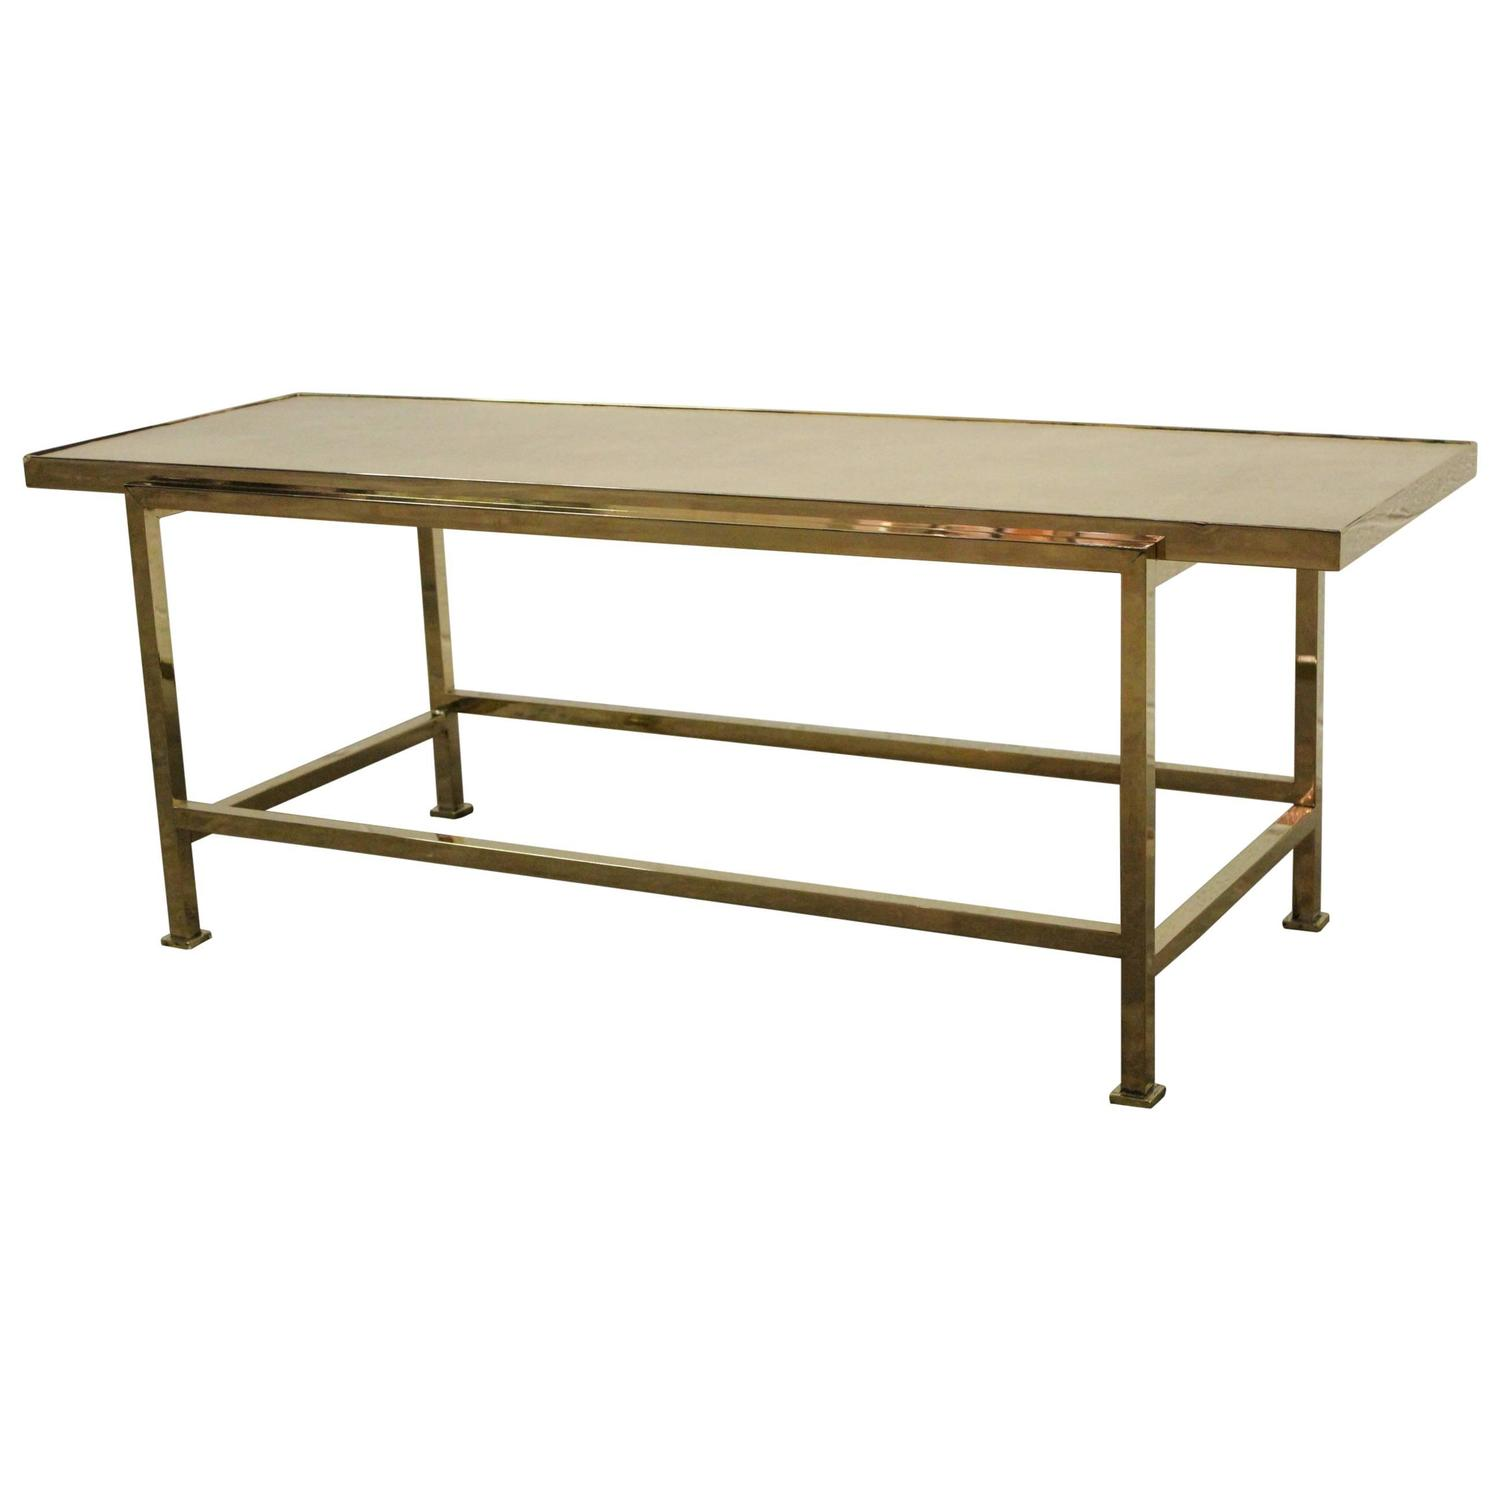 Narrow Rectangular Brass And Marble Coffee Table By Edward: Brass And Leather Coffee Table By Edward Wormley For